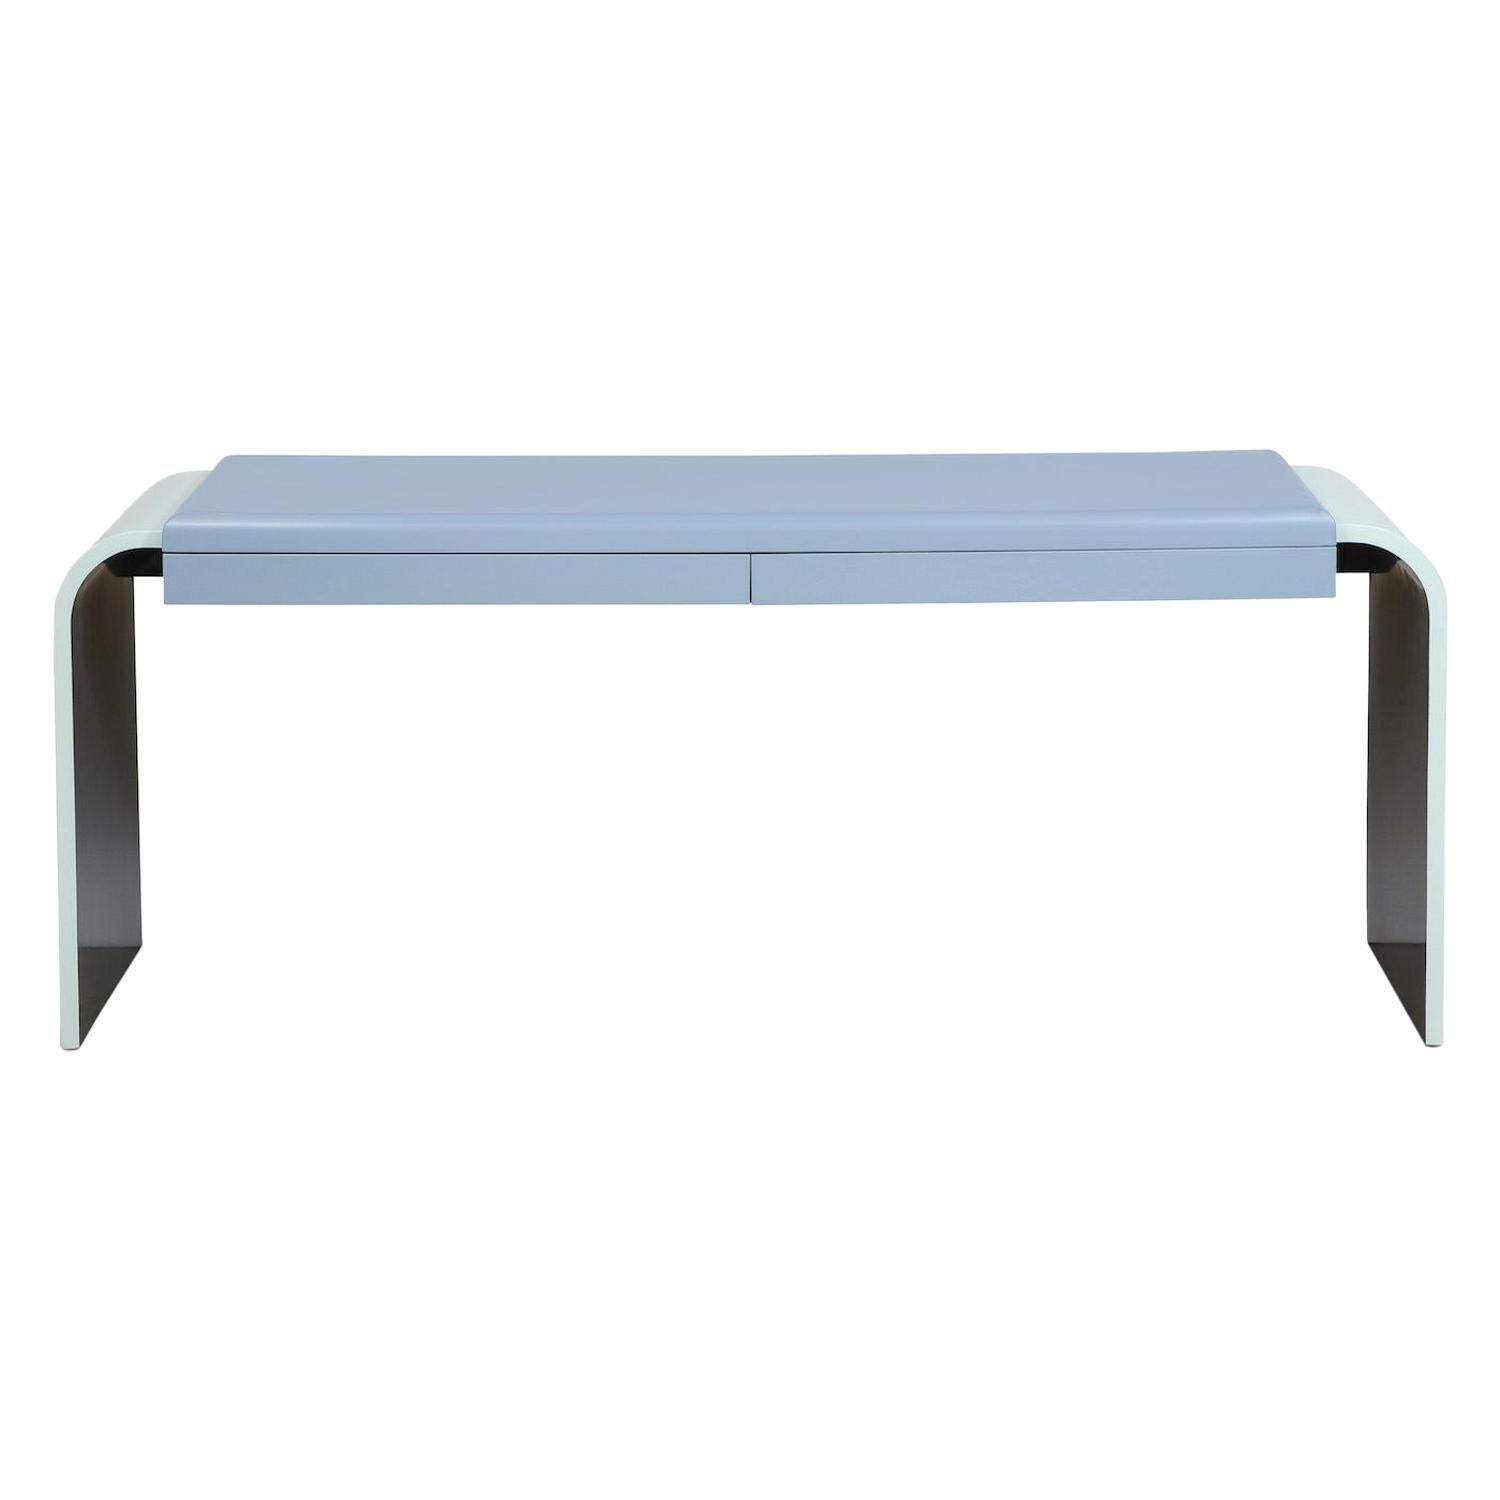 2-Drawer Console Table by Aldo Tura